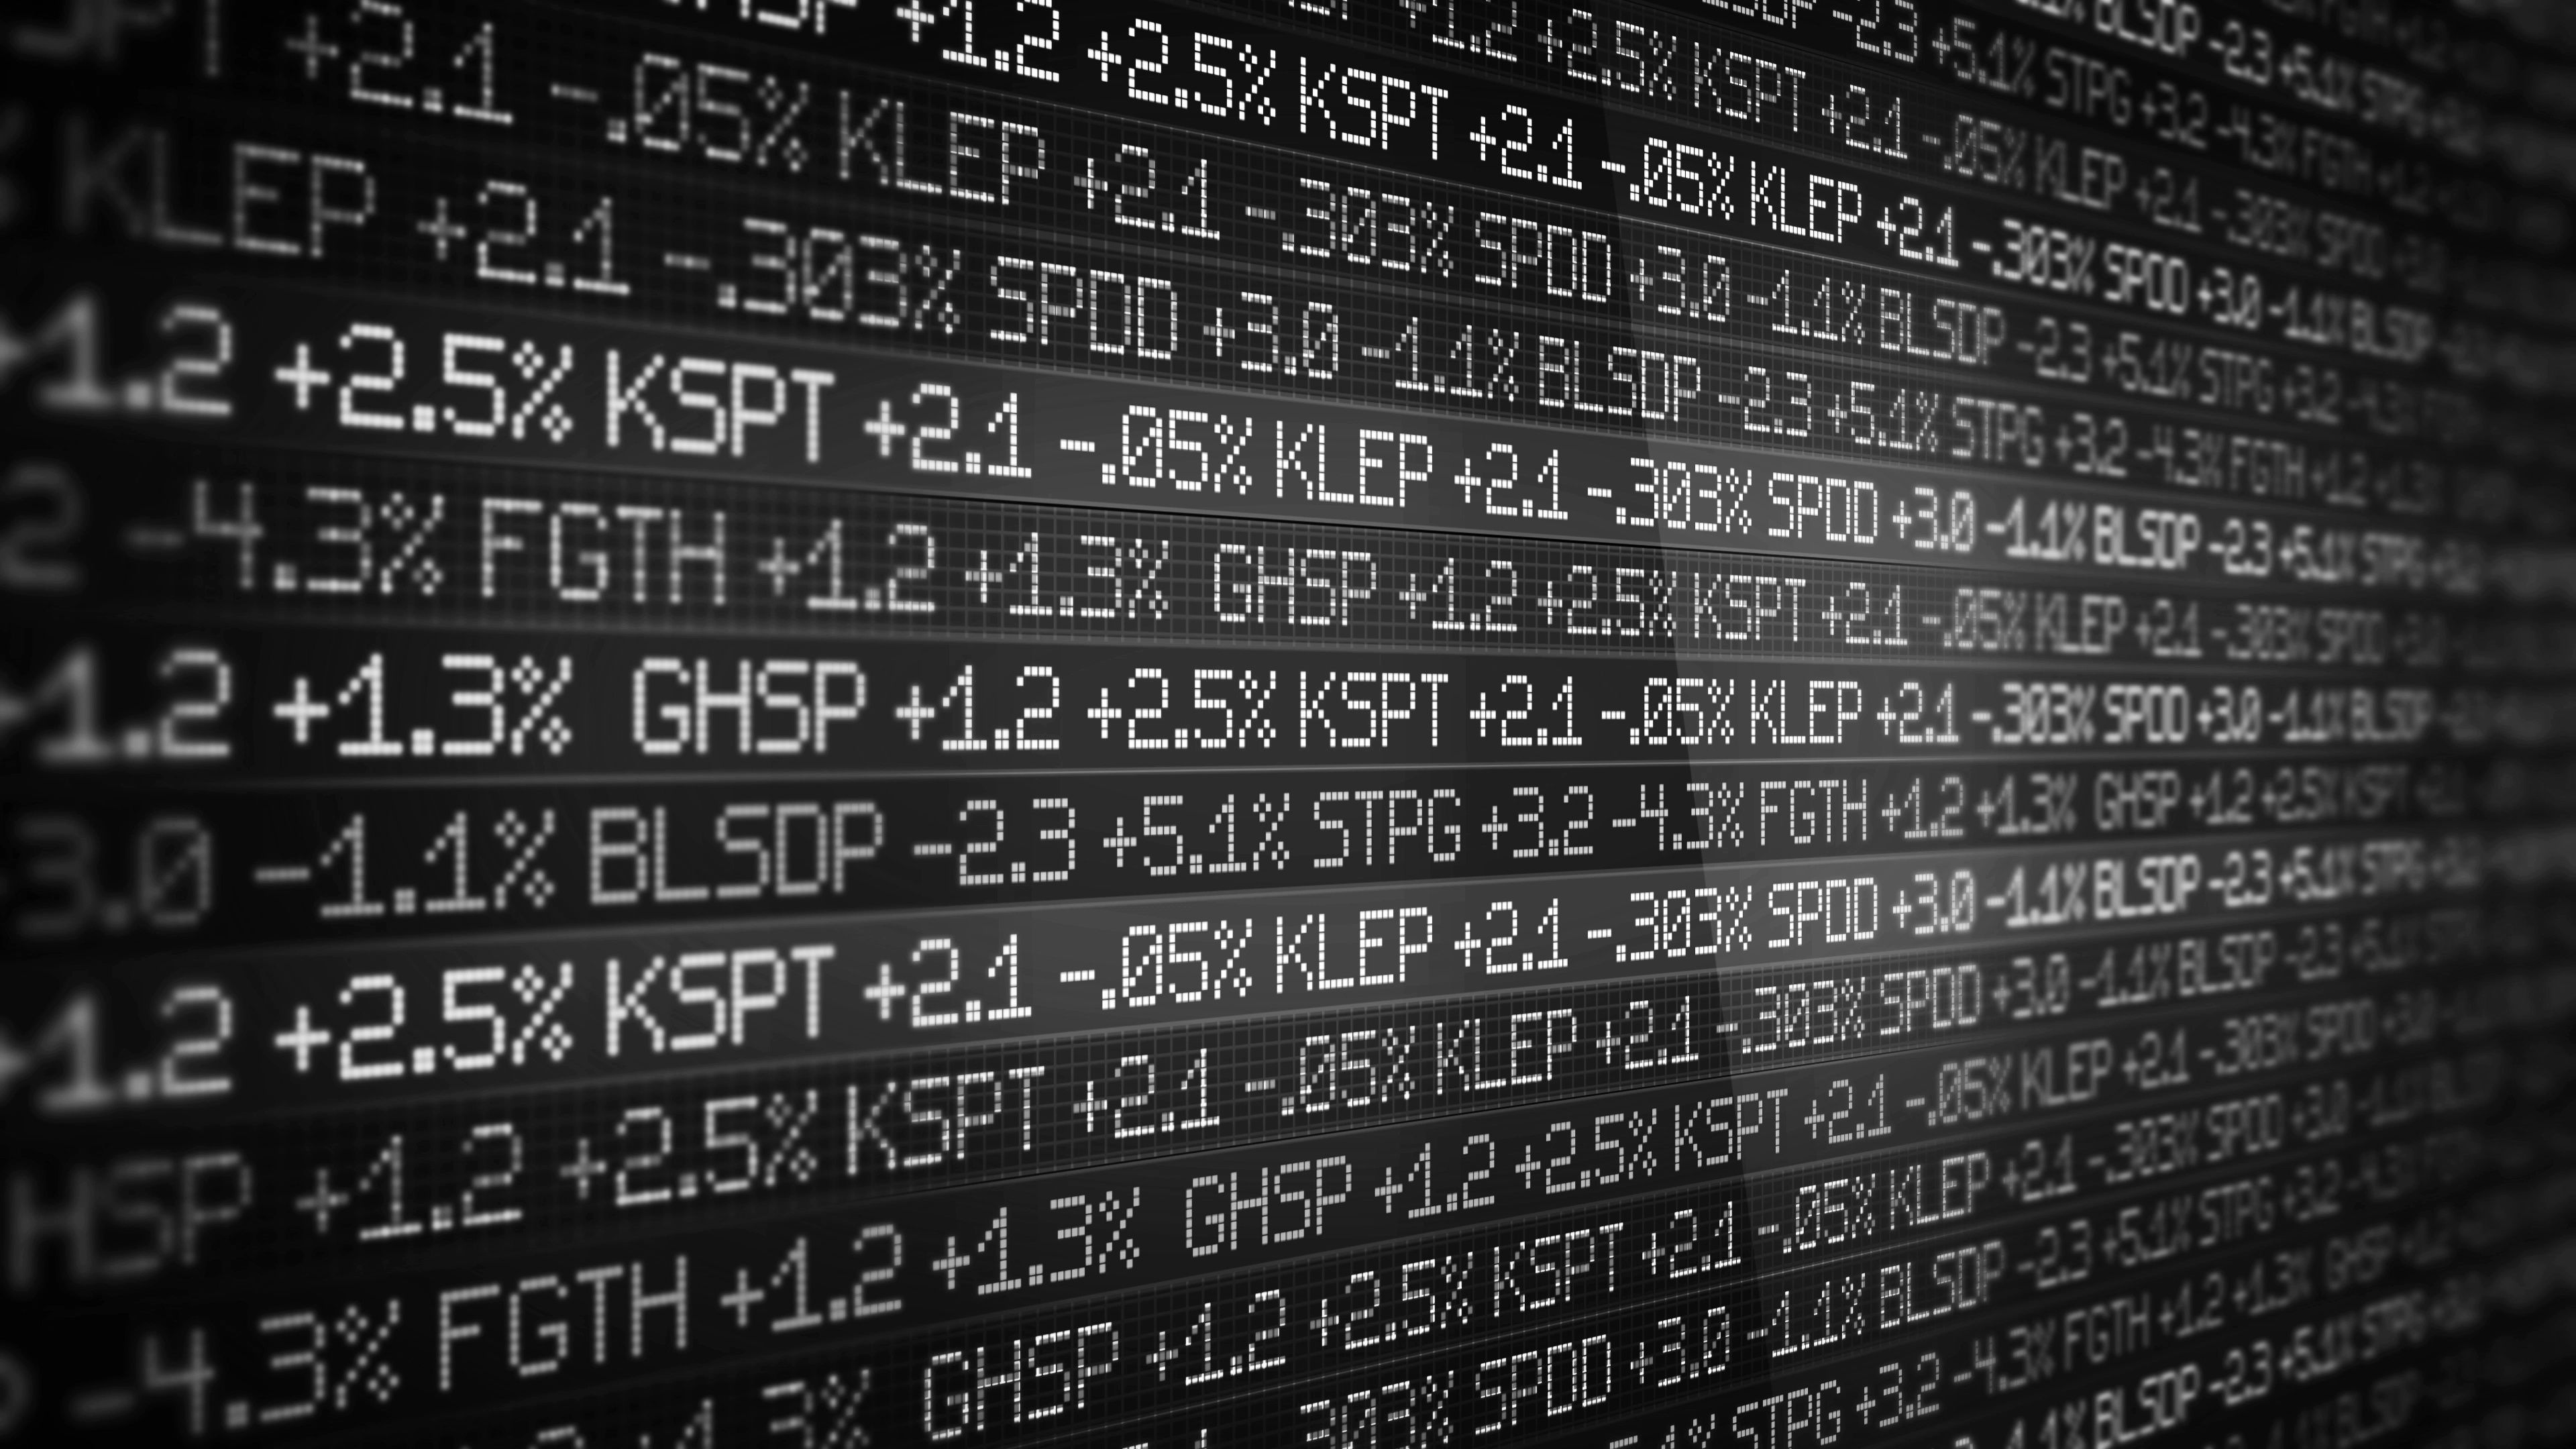 Black And White Stock Market Ticker Scrolling In Sleek Environment Wall Street Stock Footage Ad Market Ti Stock Market Ticker Stock Market Black And White